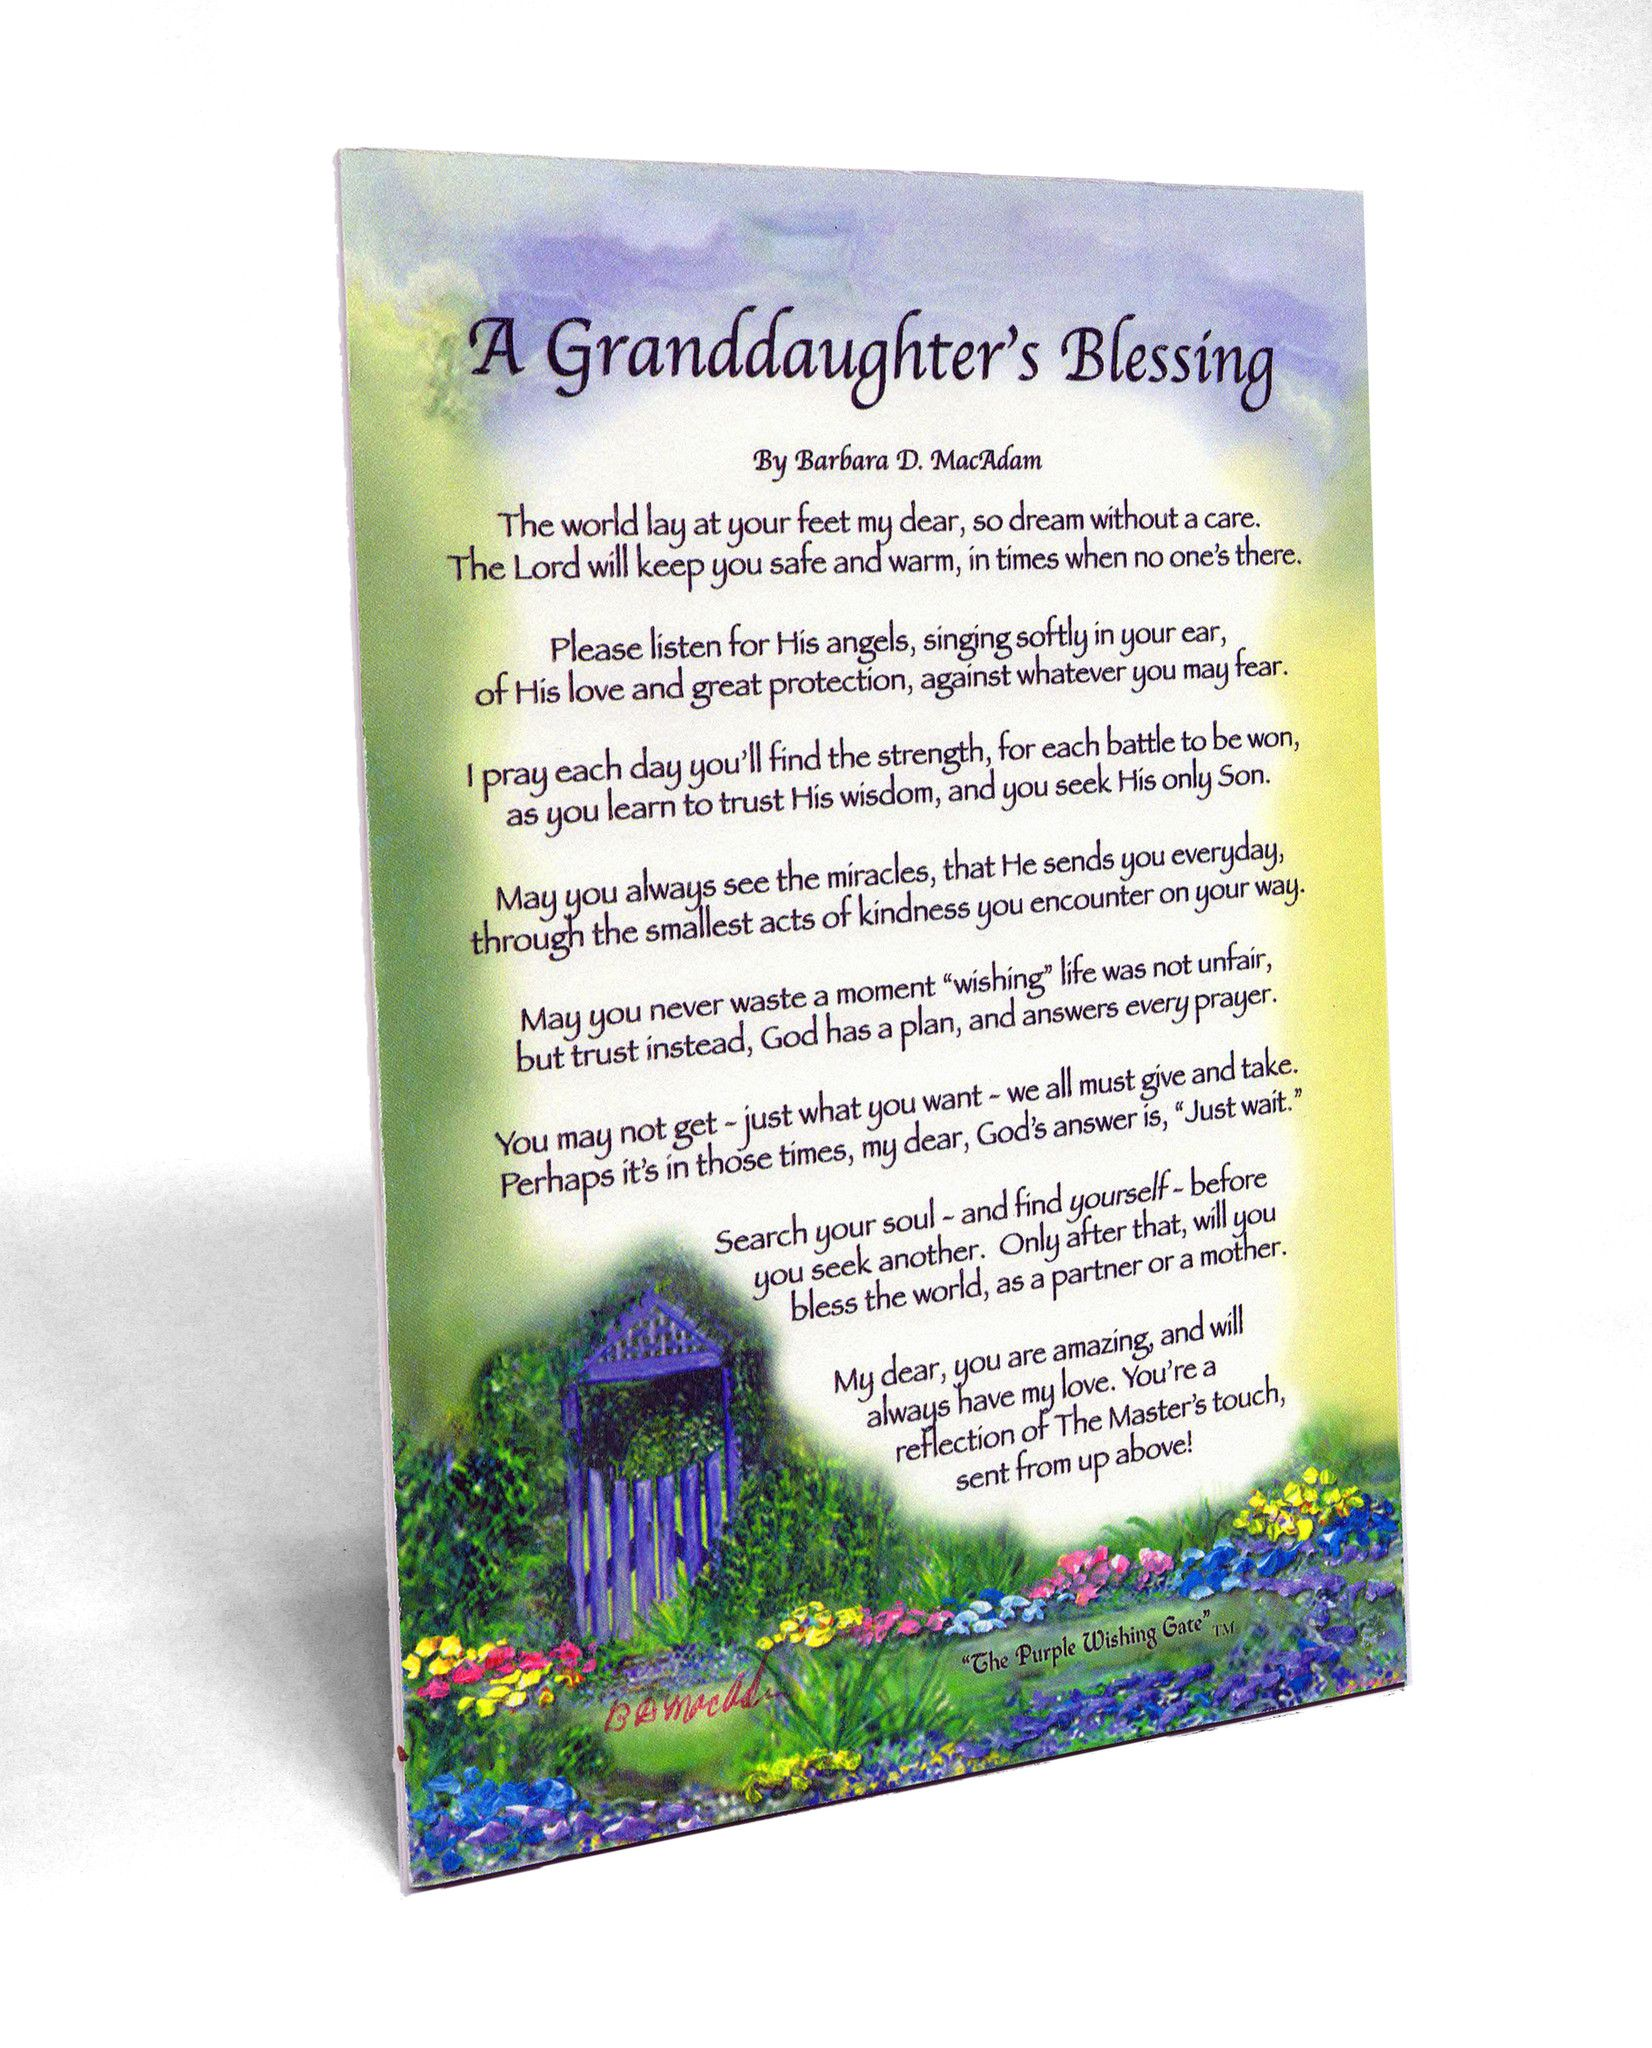 A Granddaughter's Blessing for baby (5x7) - 5x7 Frame-able Gift Clearance